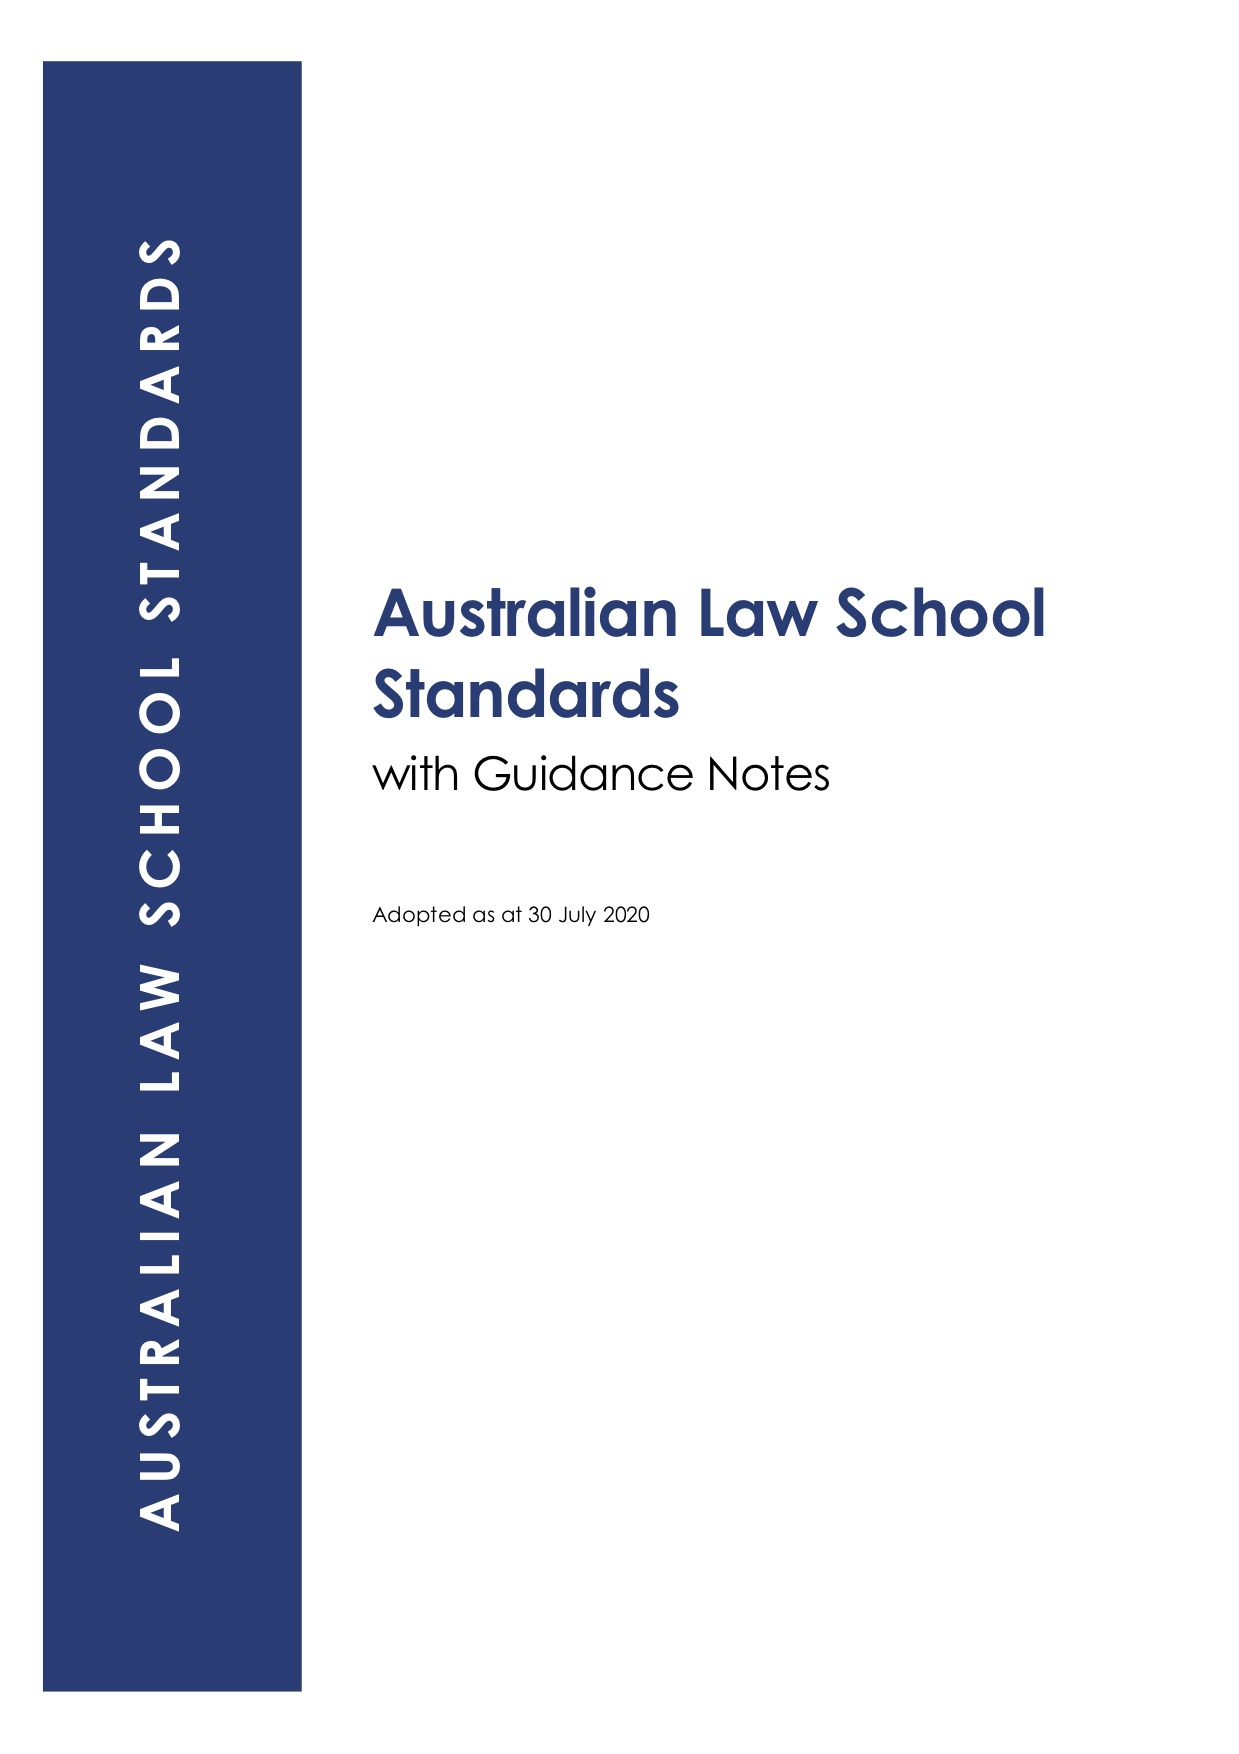 ALS Standards Cover